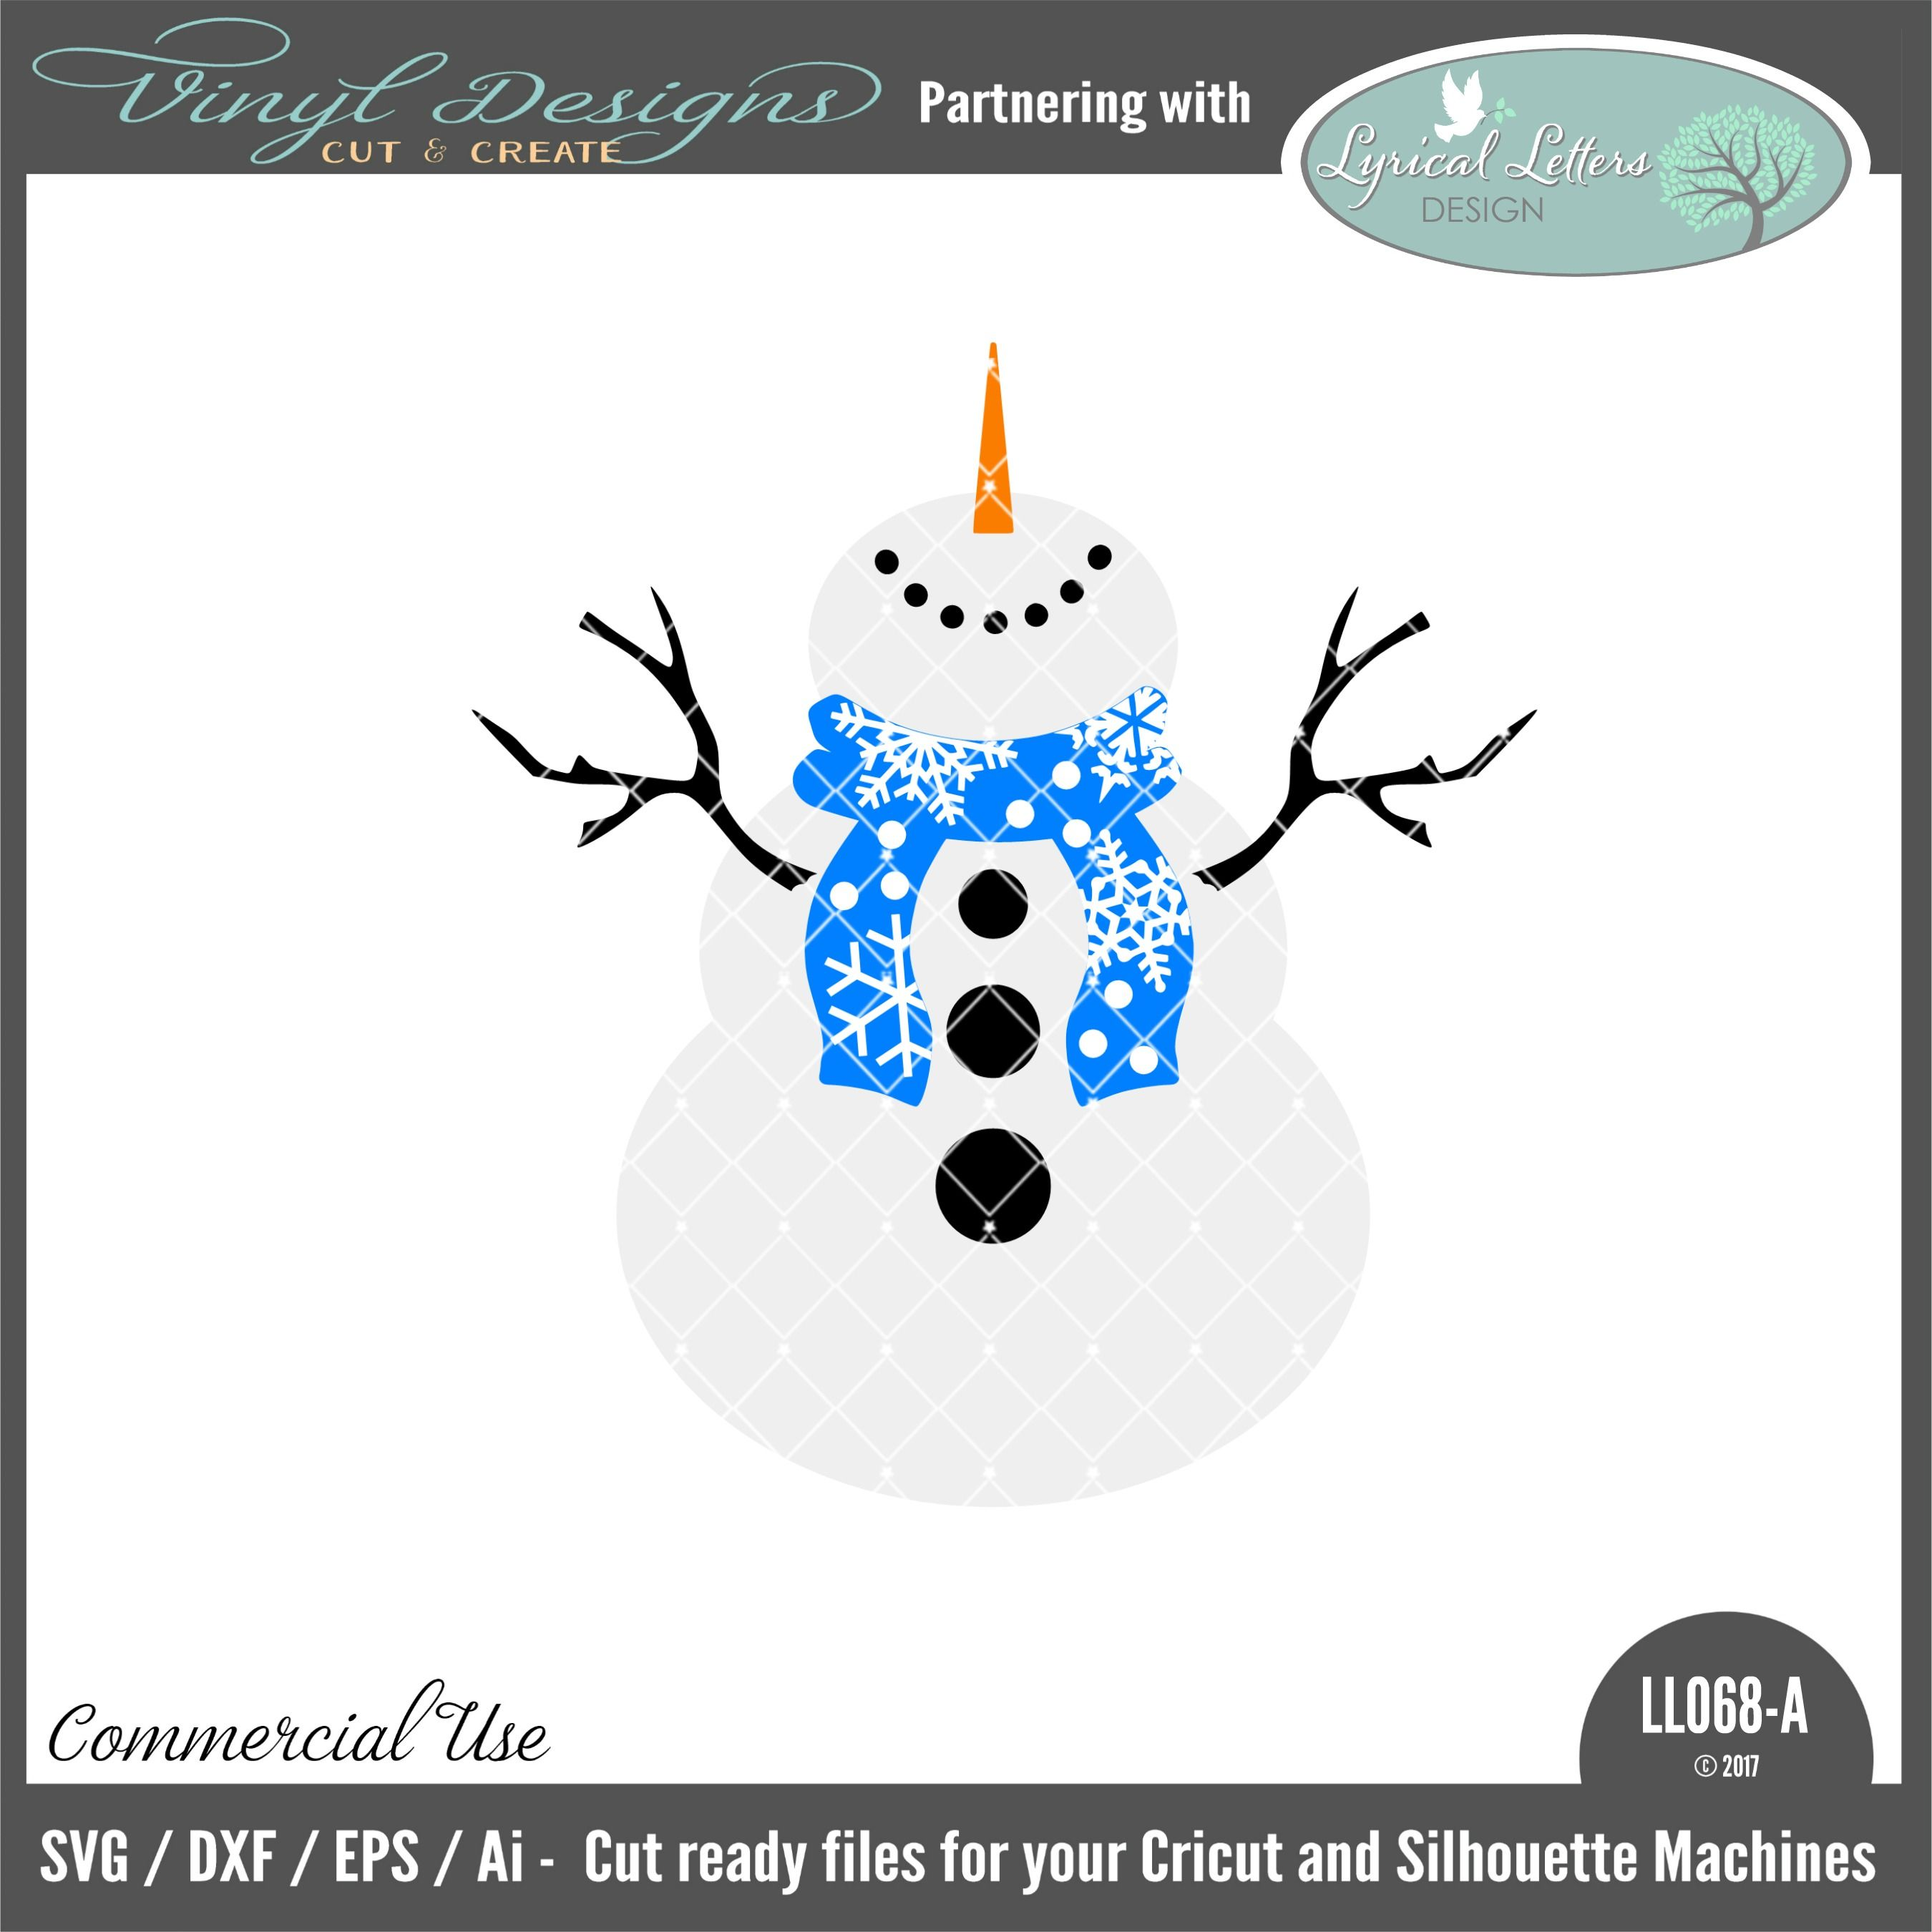 LL068A Snowman Art. Sold By Lyrical Letters DesignSmall